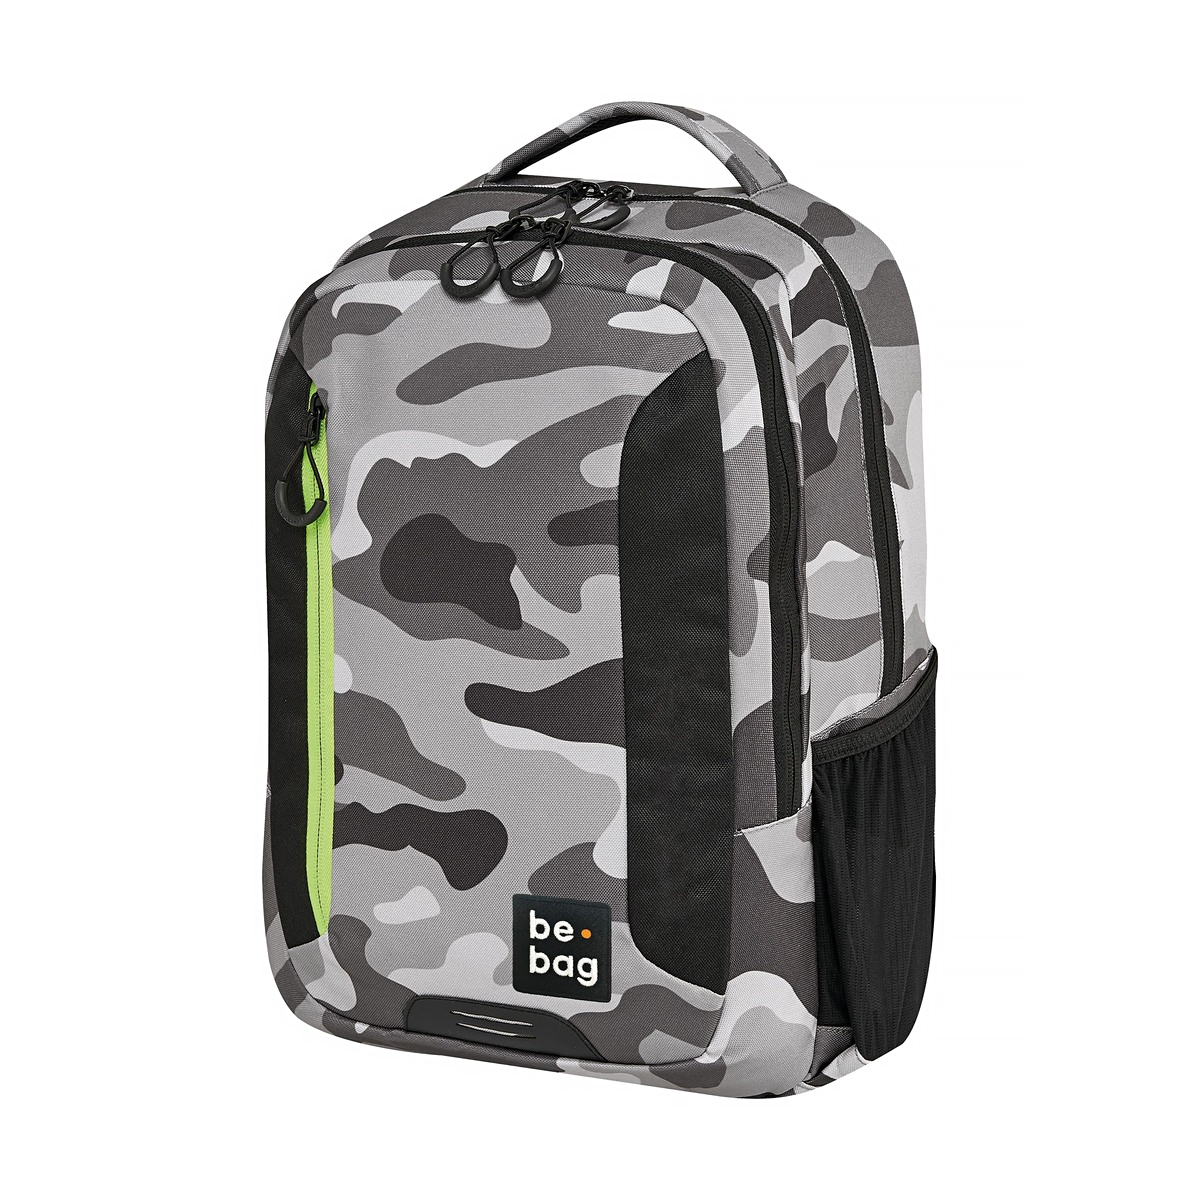 Rucsac Ergonomic Be.Bag, Be.Adventurer, Camouflage, Herlitz, 24800044